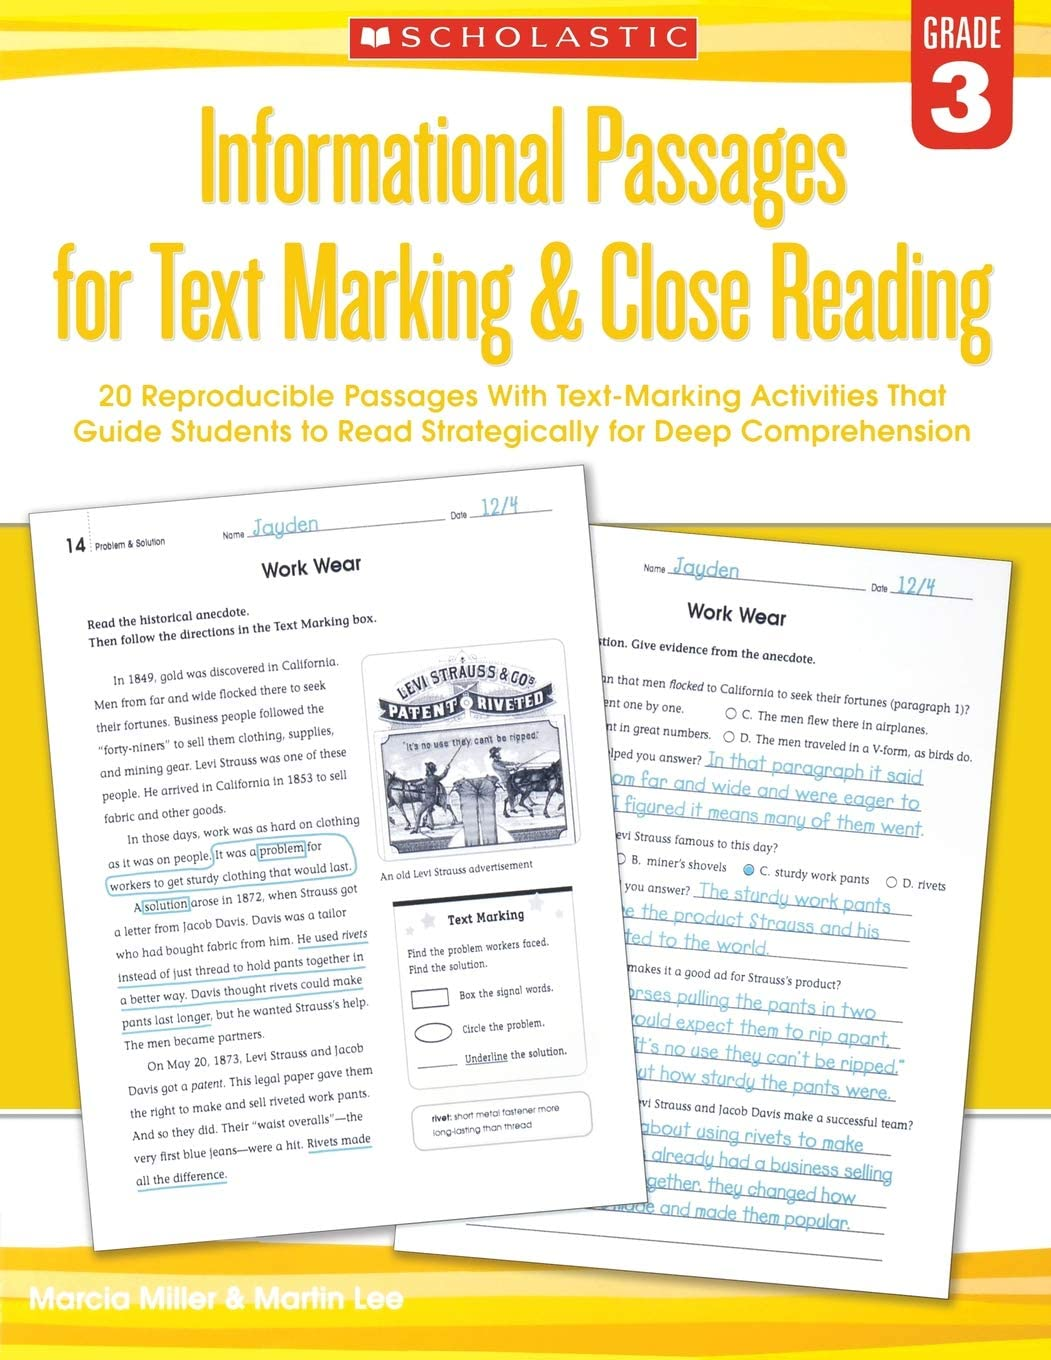 - Informational Passages For Text Marking & Close Reading: Grade 3